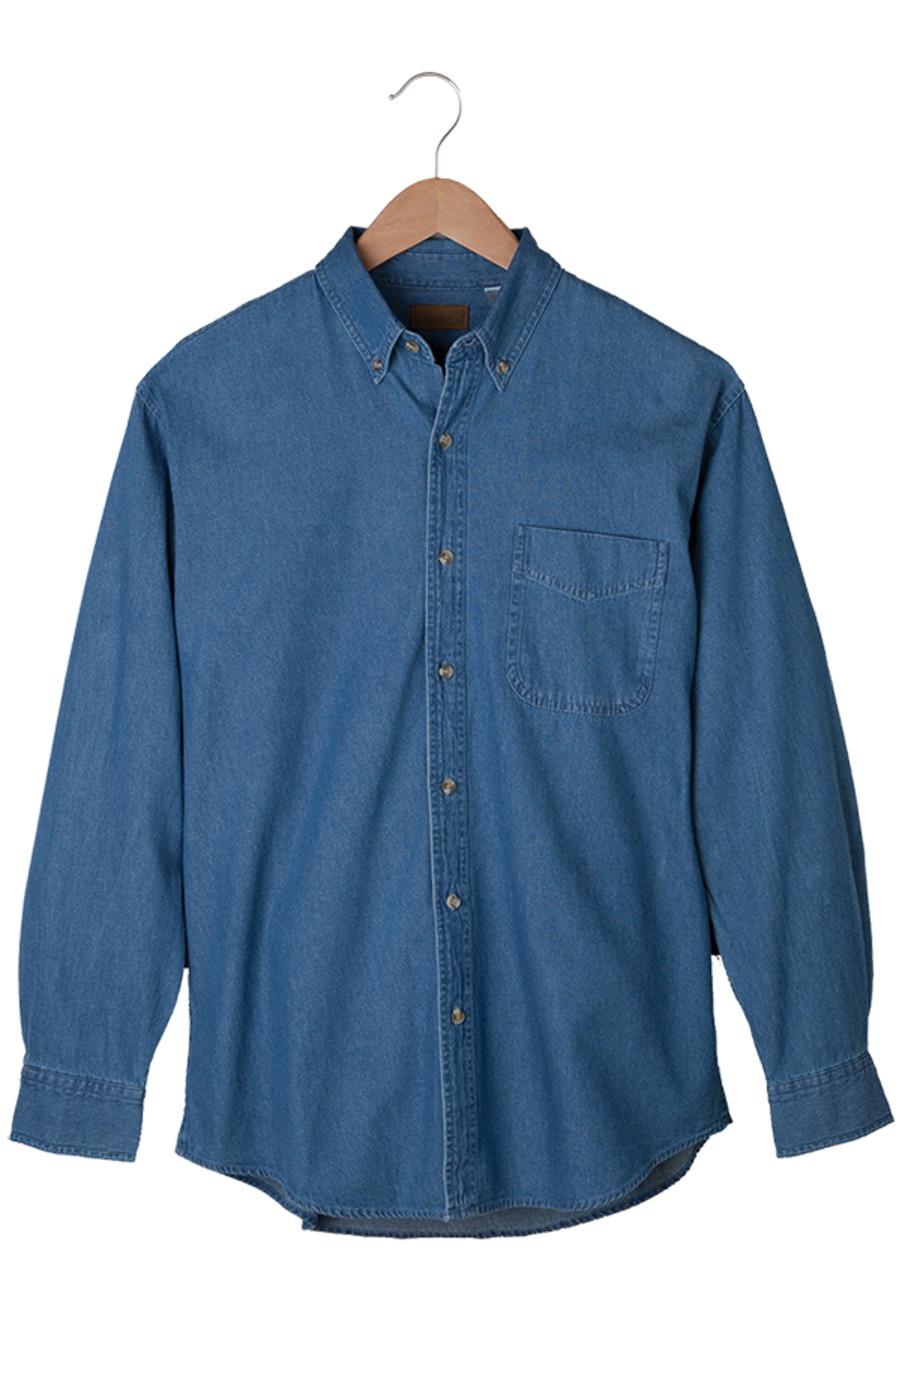 Edwards Garment 1093 - Men's Mid-Weight Long Sleeve ...